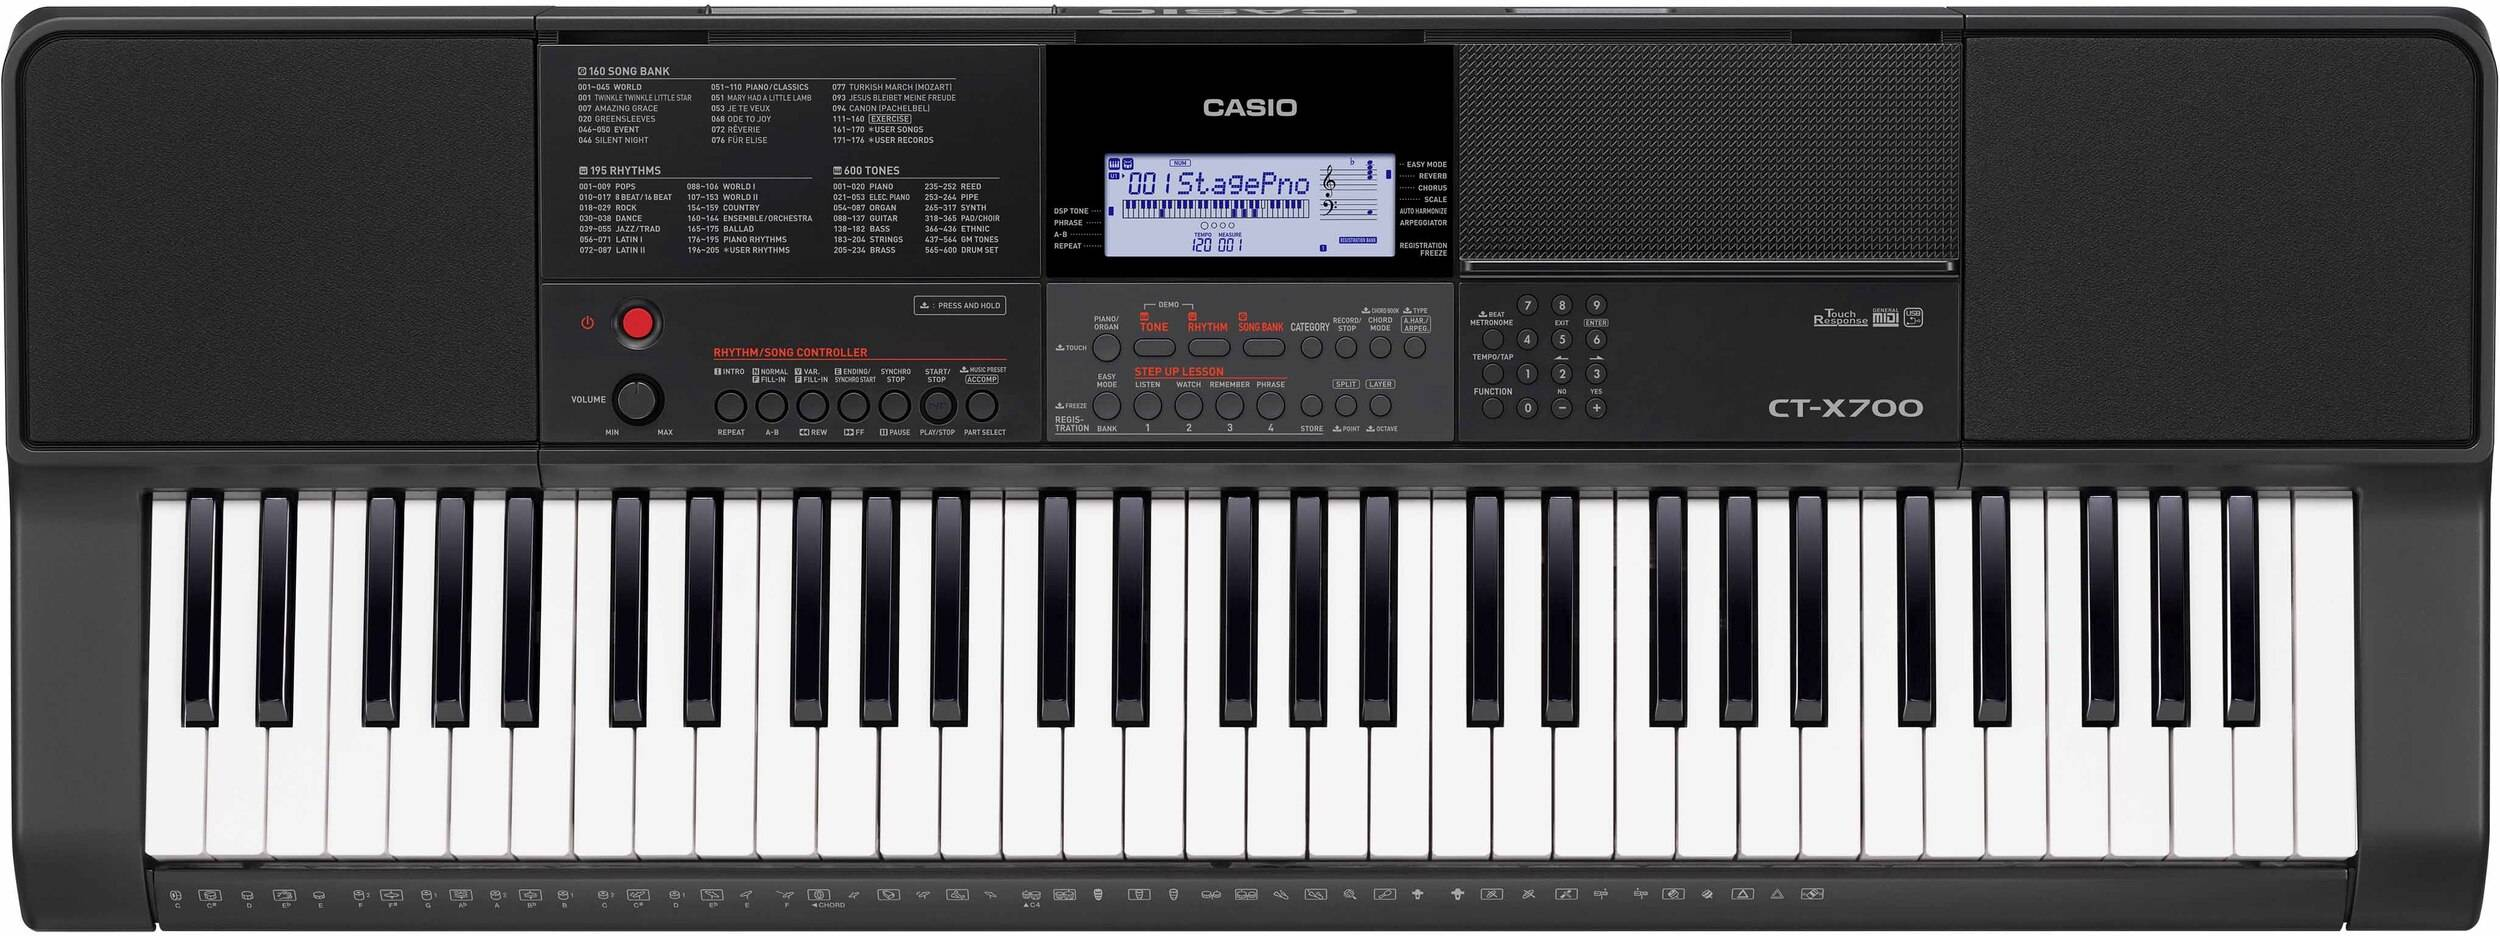 TECLADO CASIO PORTATIL CT-X700